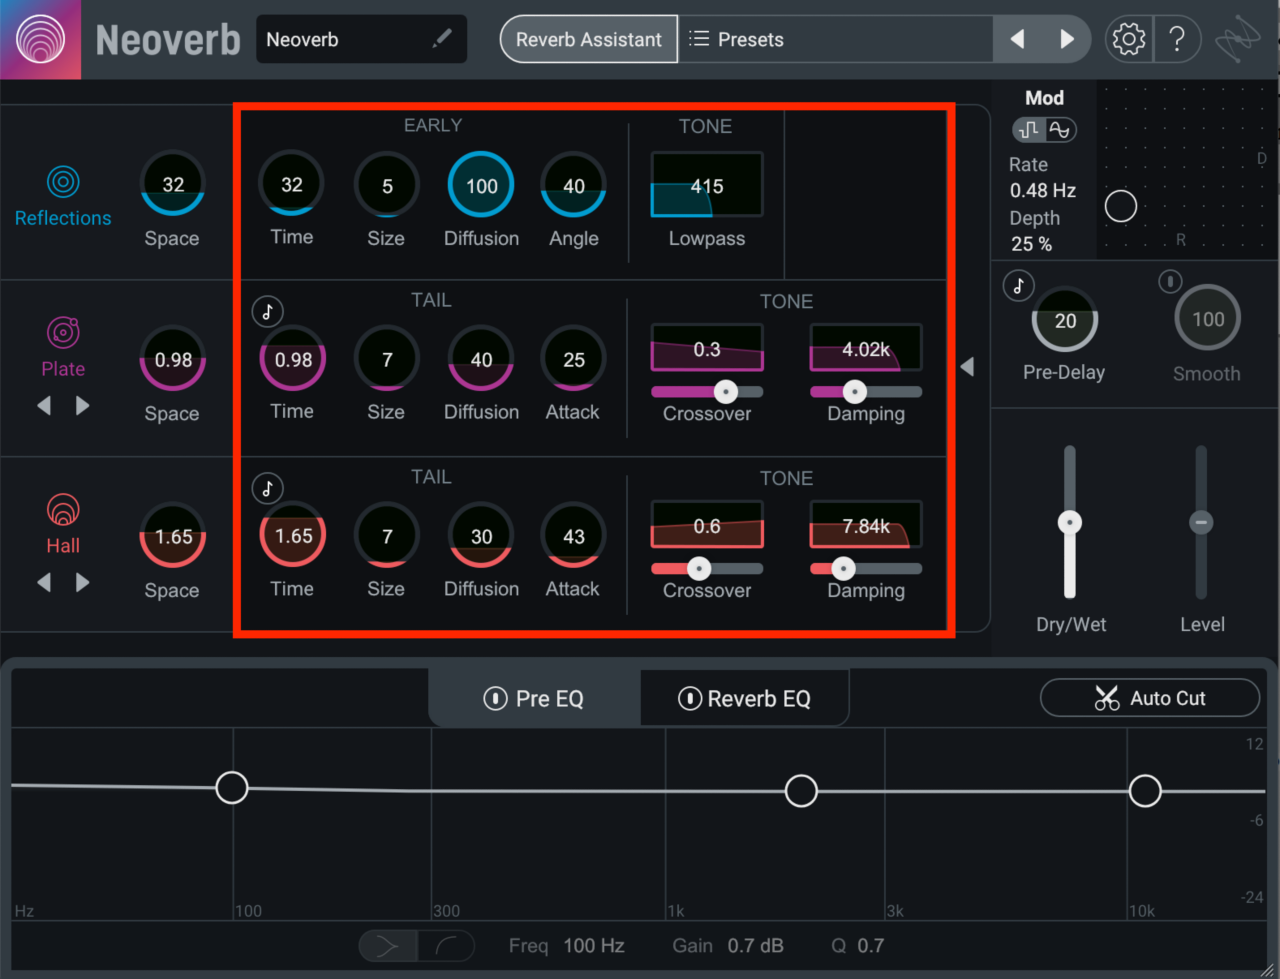 Neoverb Advanced Panel